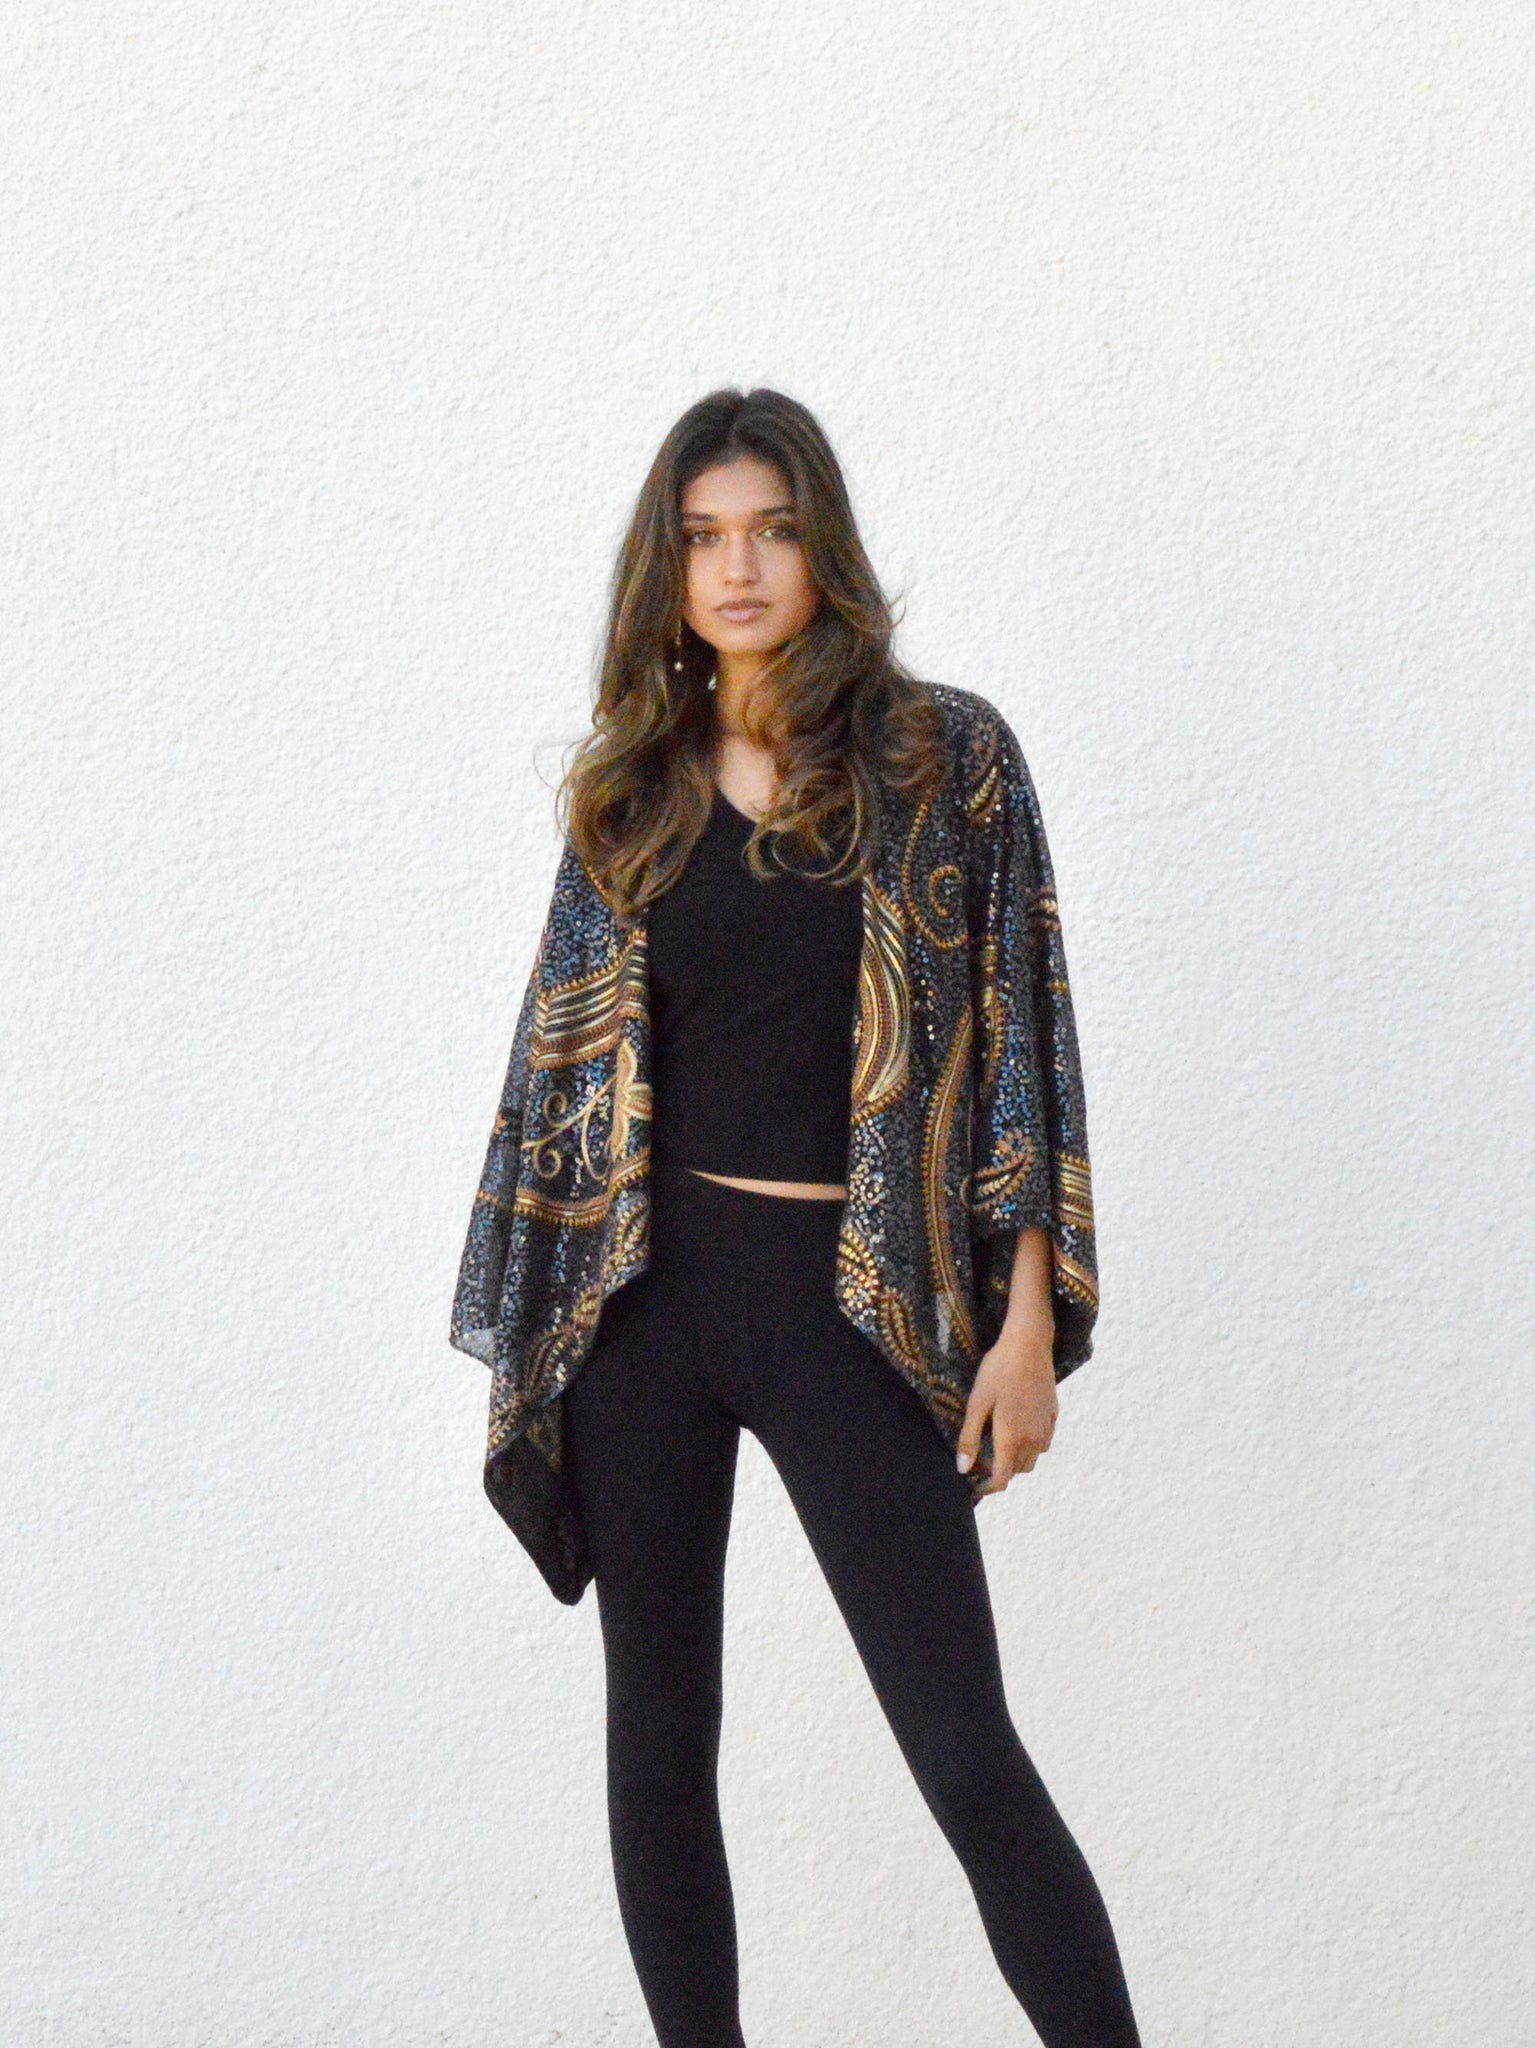 Dark haired woman in black crop kimono jacket with gold sequins.